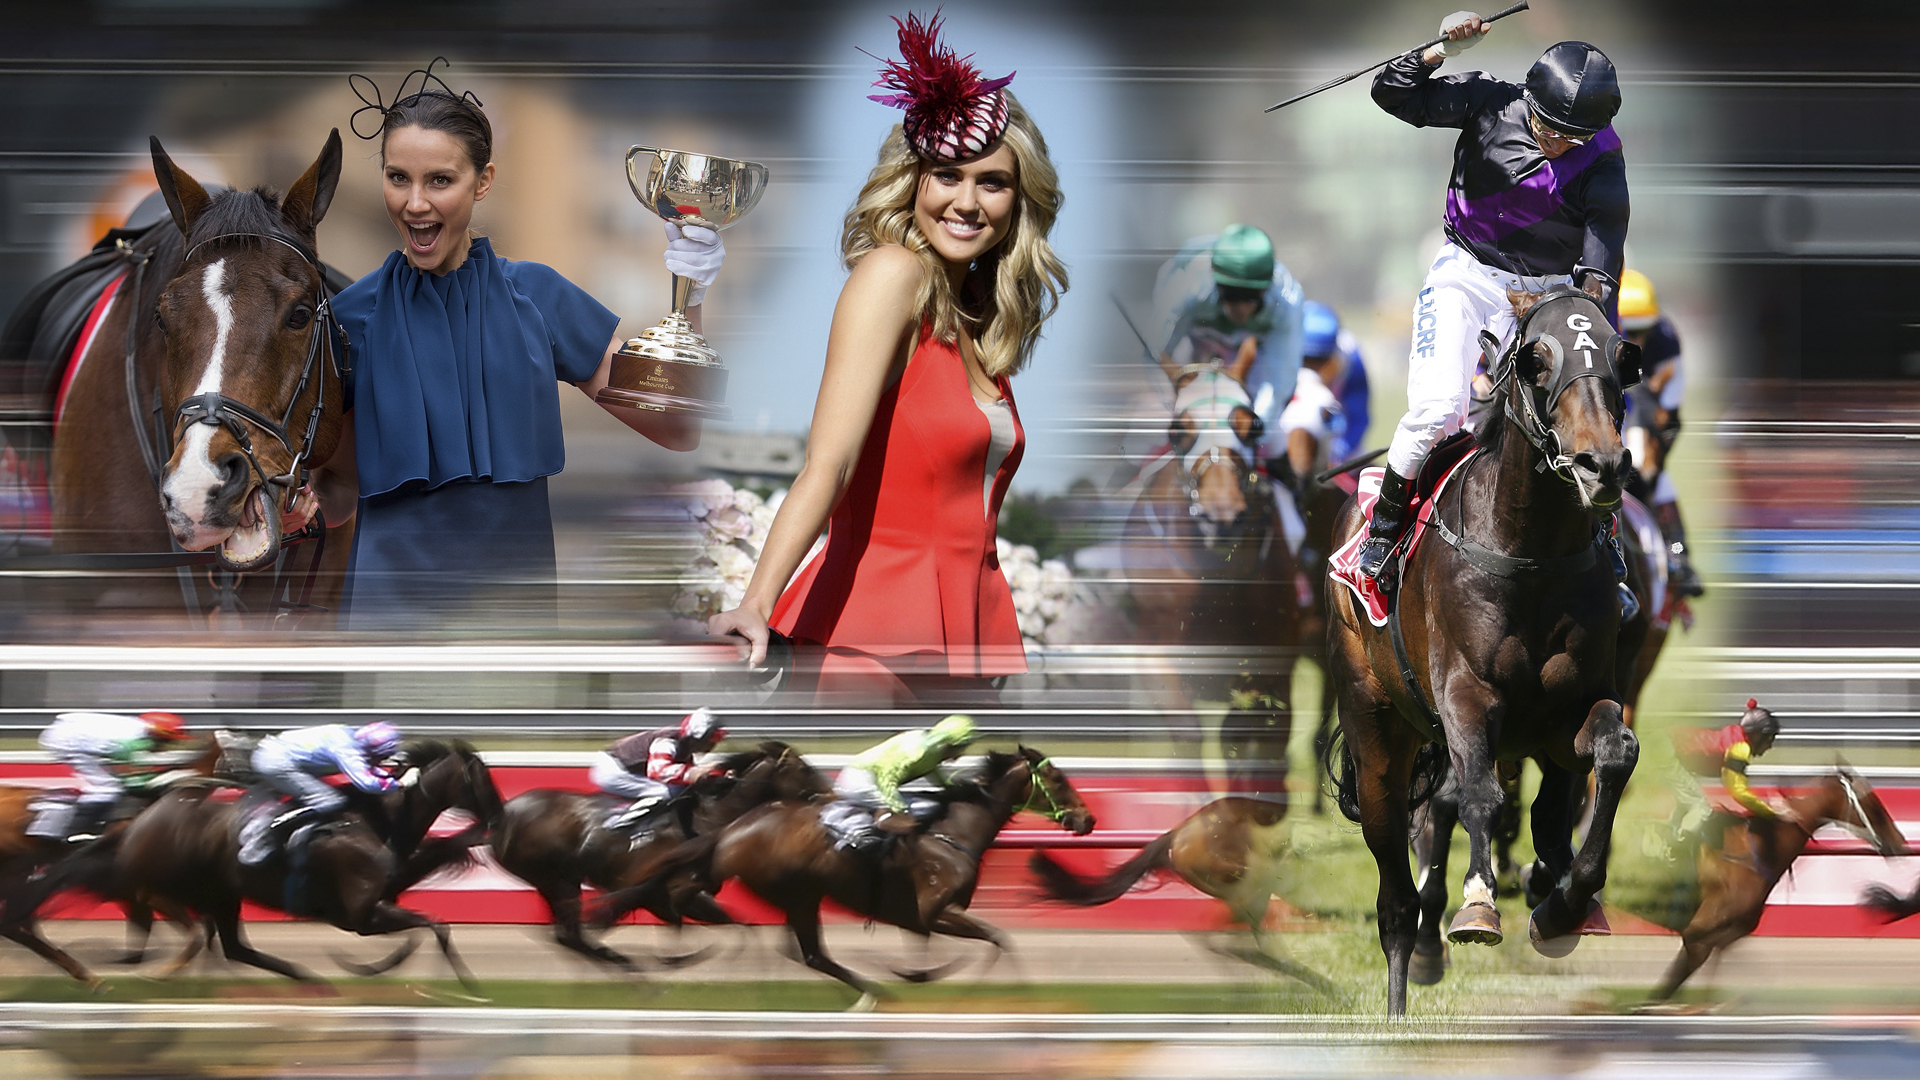 16:9. What time does the Melbourne Cup start